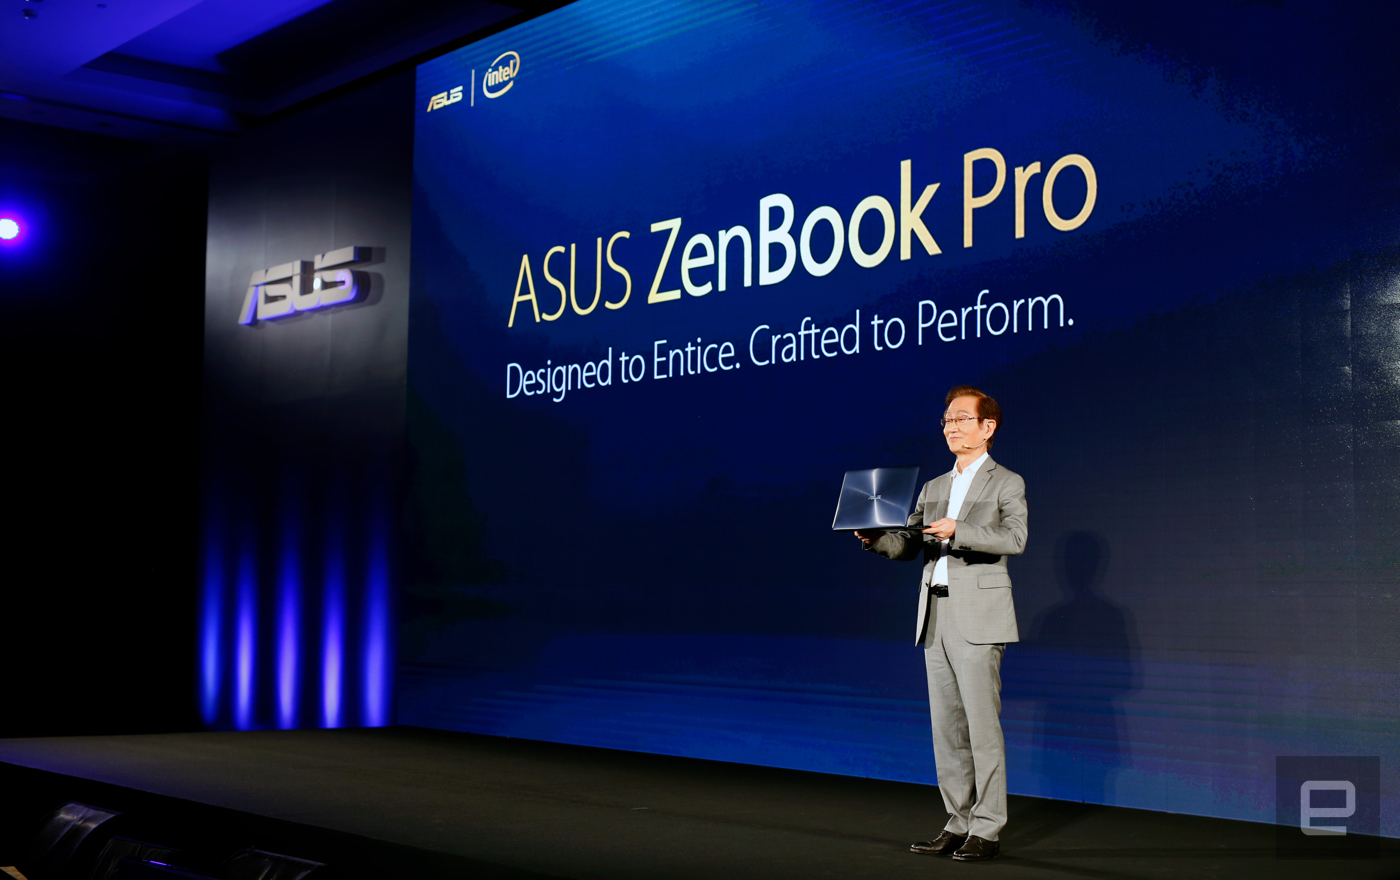 Here's everything ASUS unveiled at Computex 2017